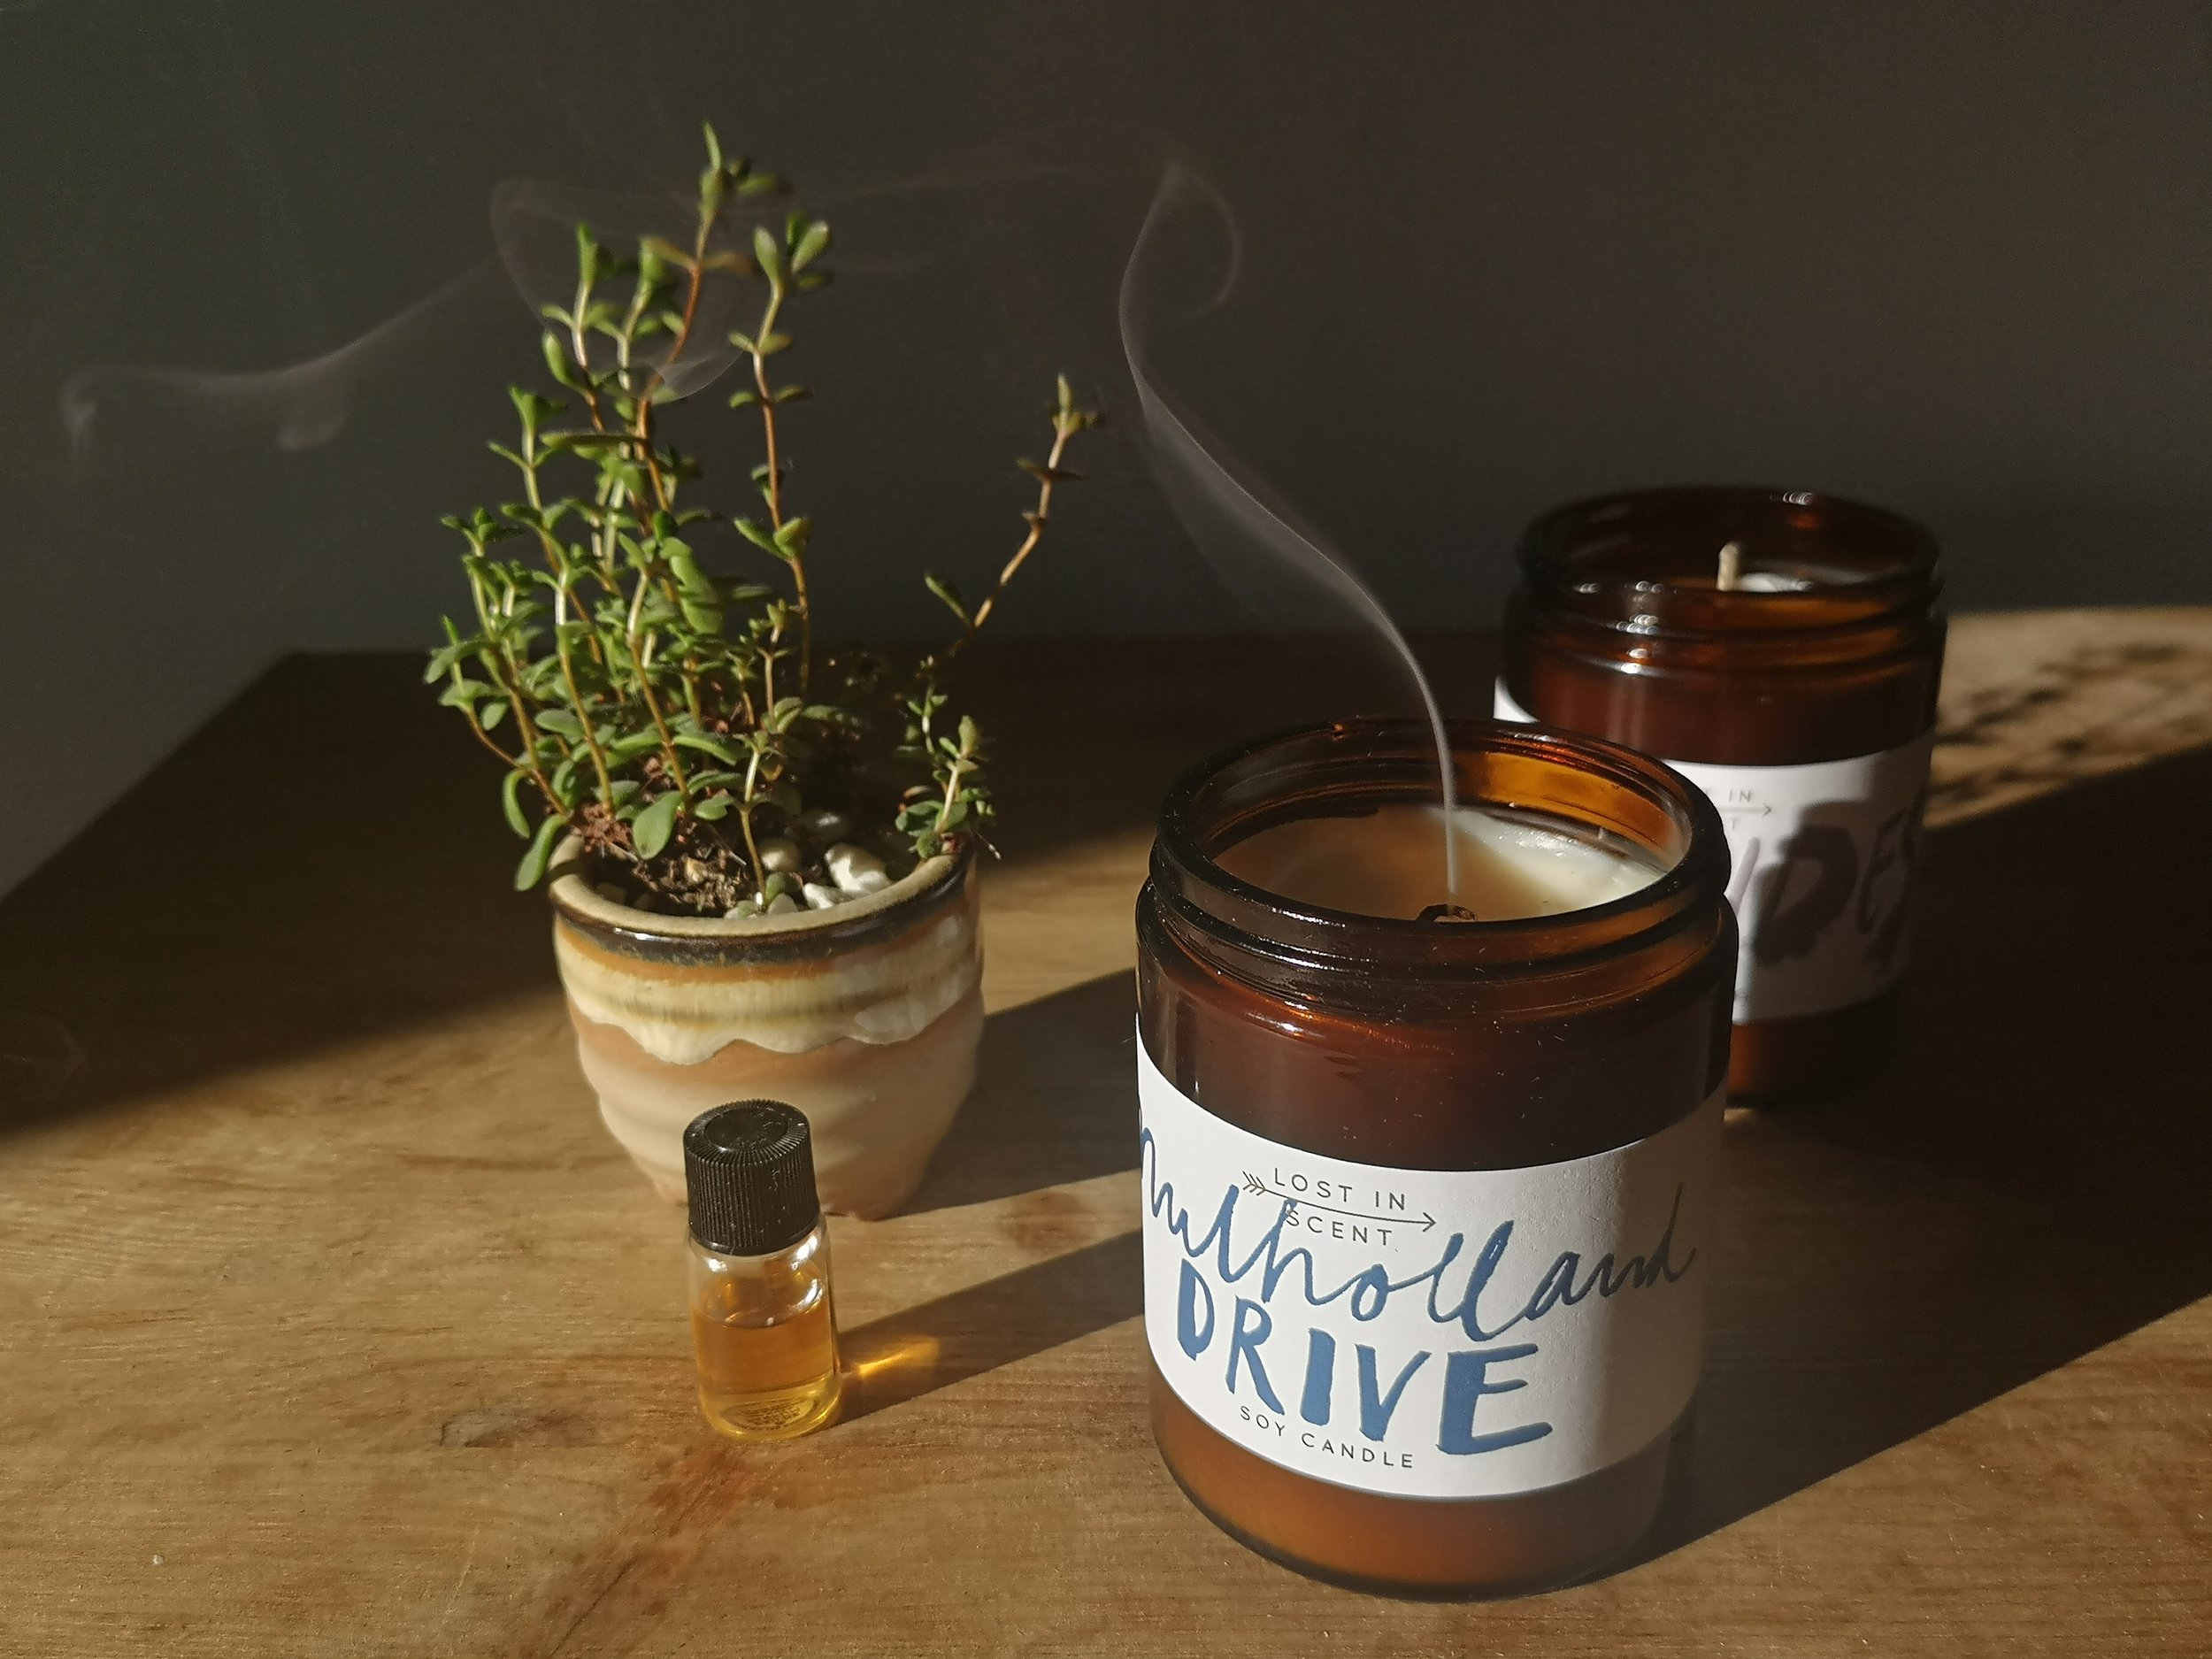 Lost in Scent - Soy candles, Mulholland Drive and Hebrides